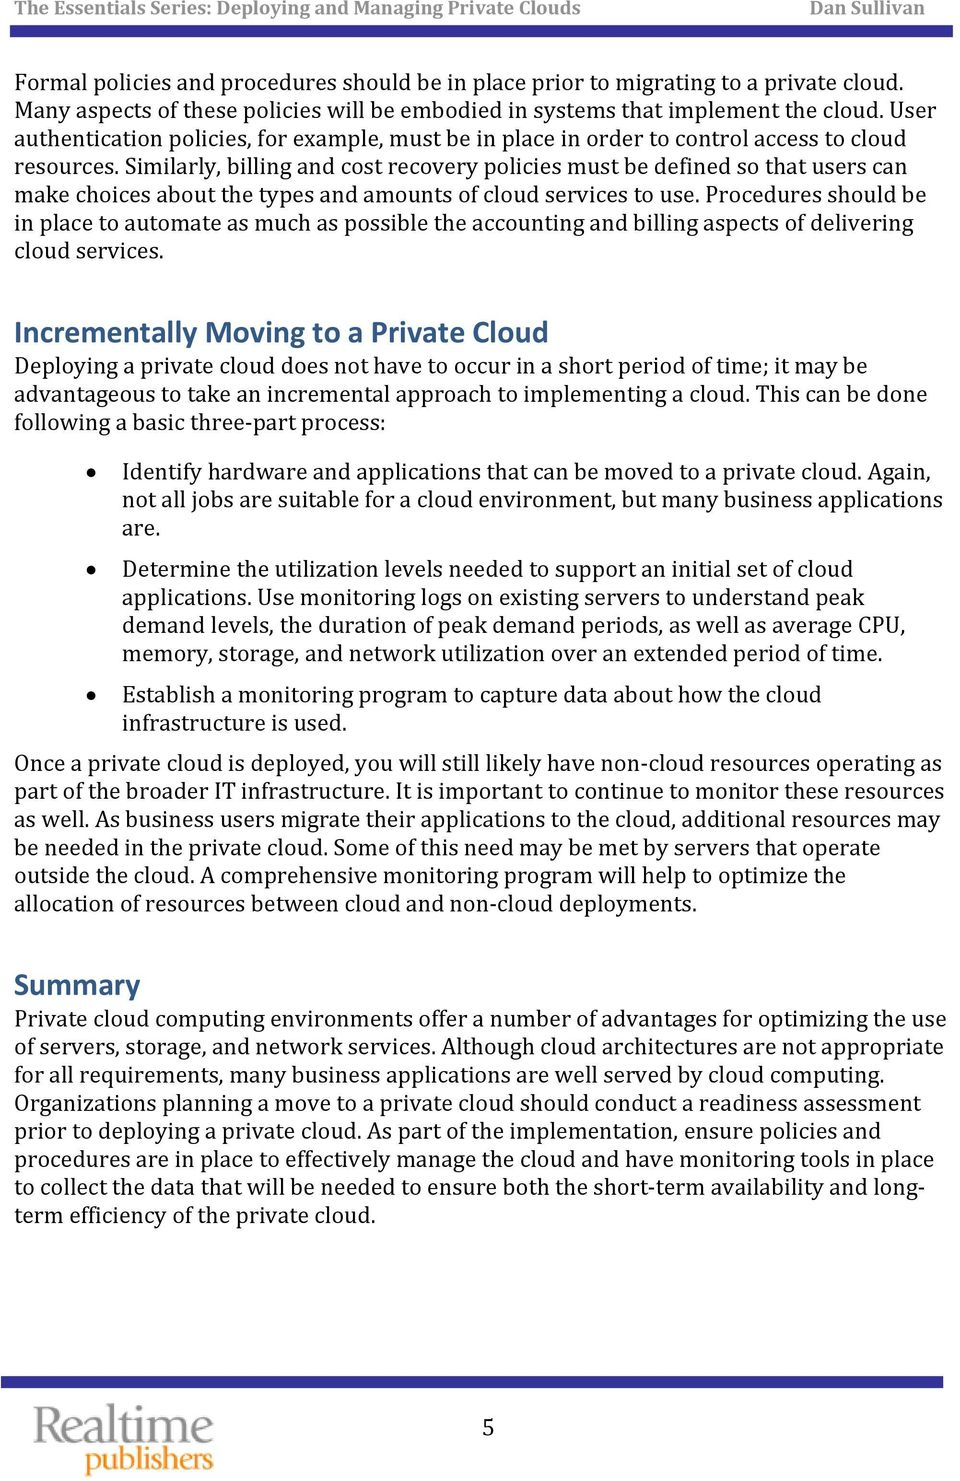 Similarly, billing and cost recovery policies must be defined so that users can make choices about the types and amounts of cloud services to use.